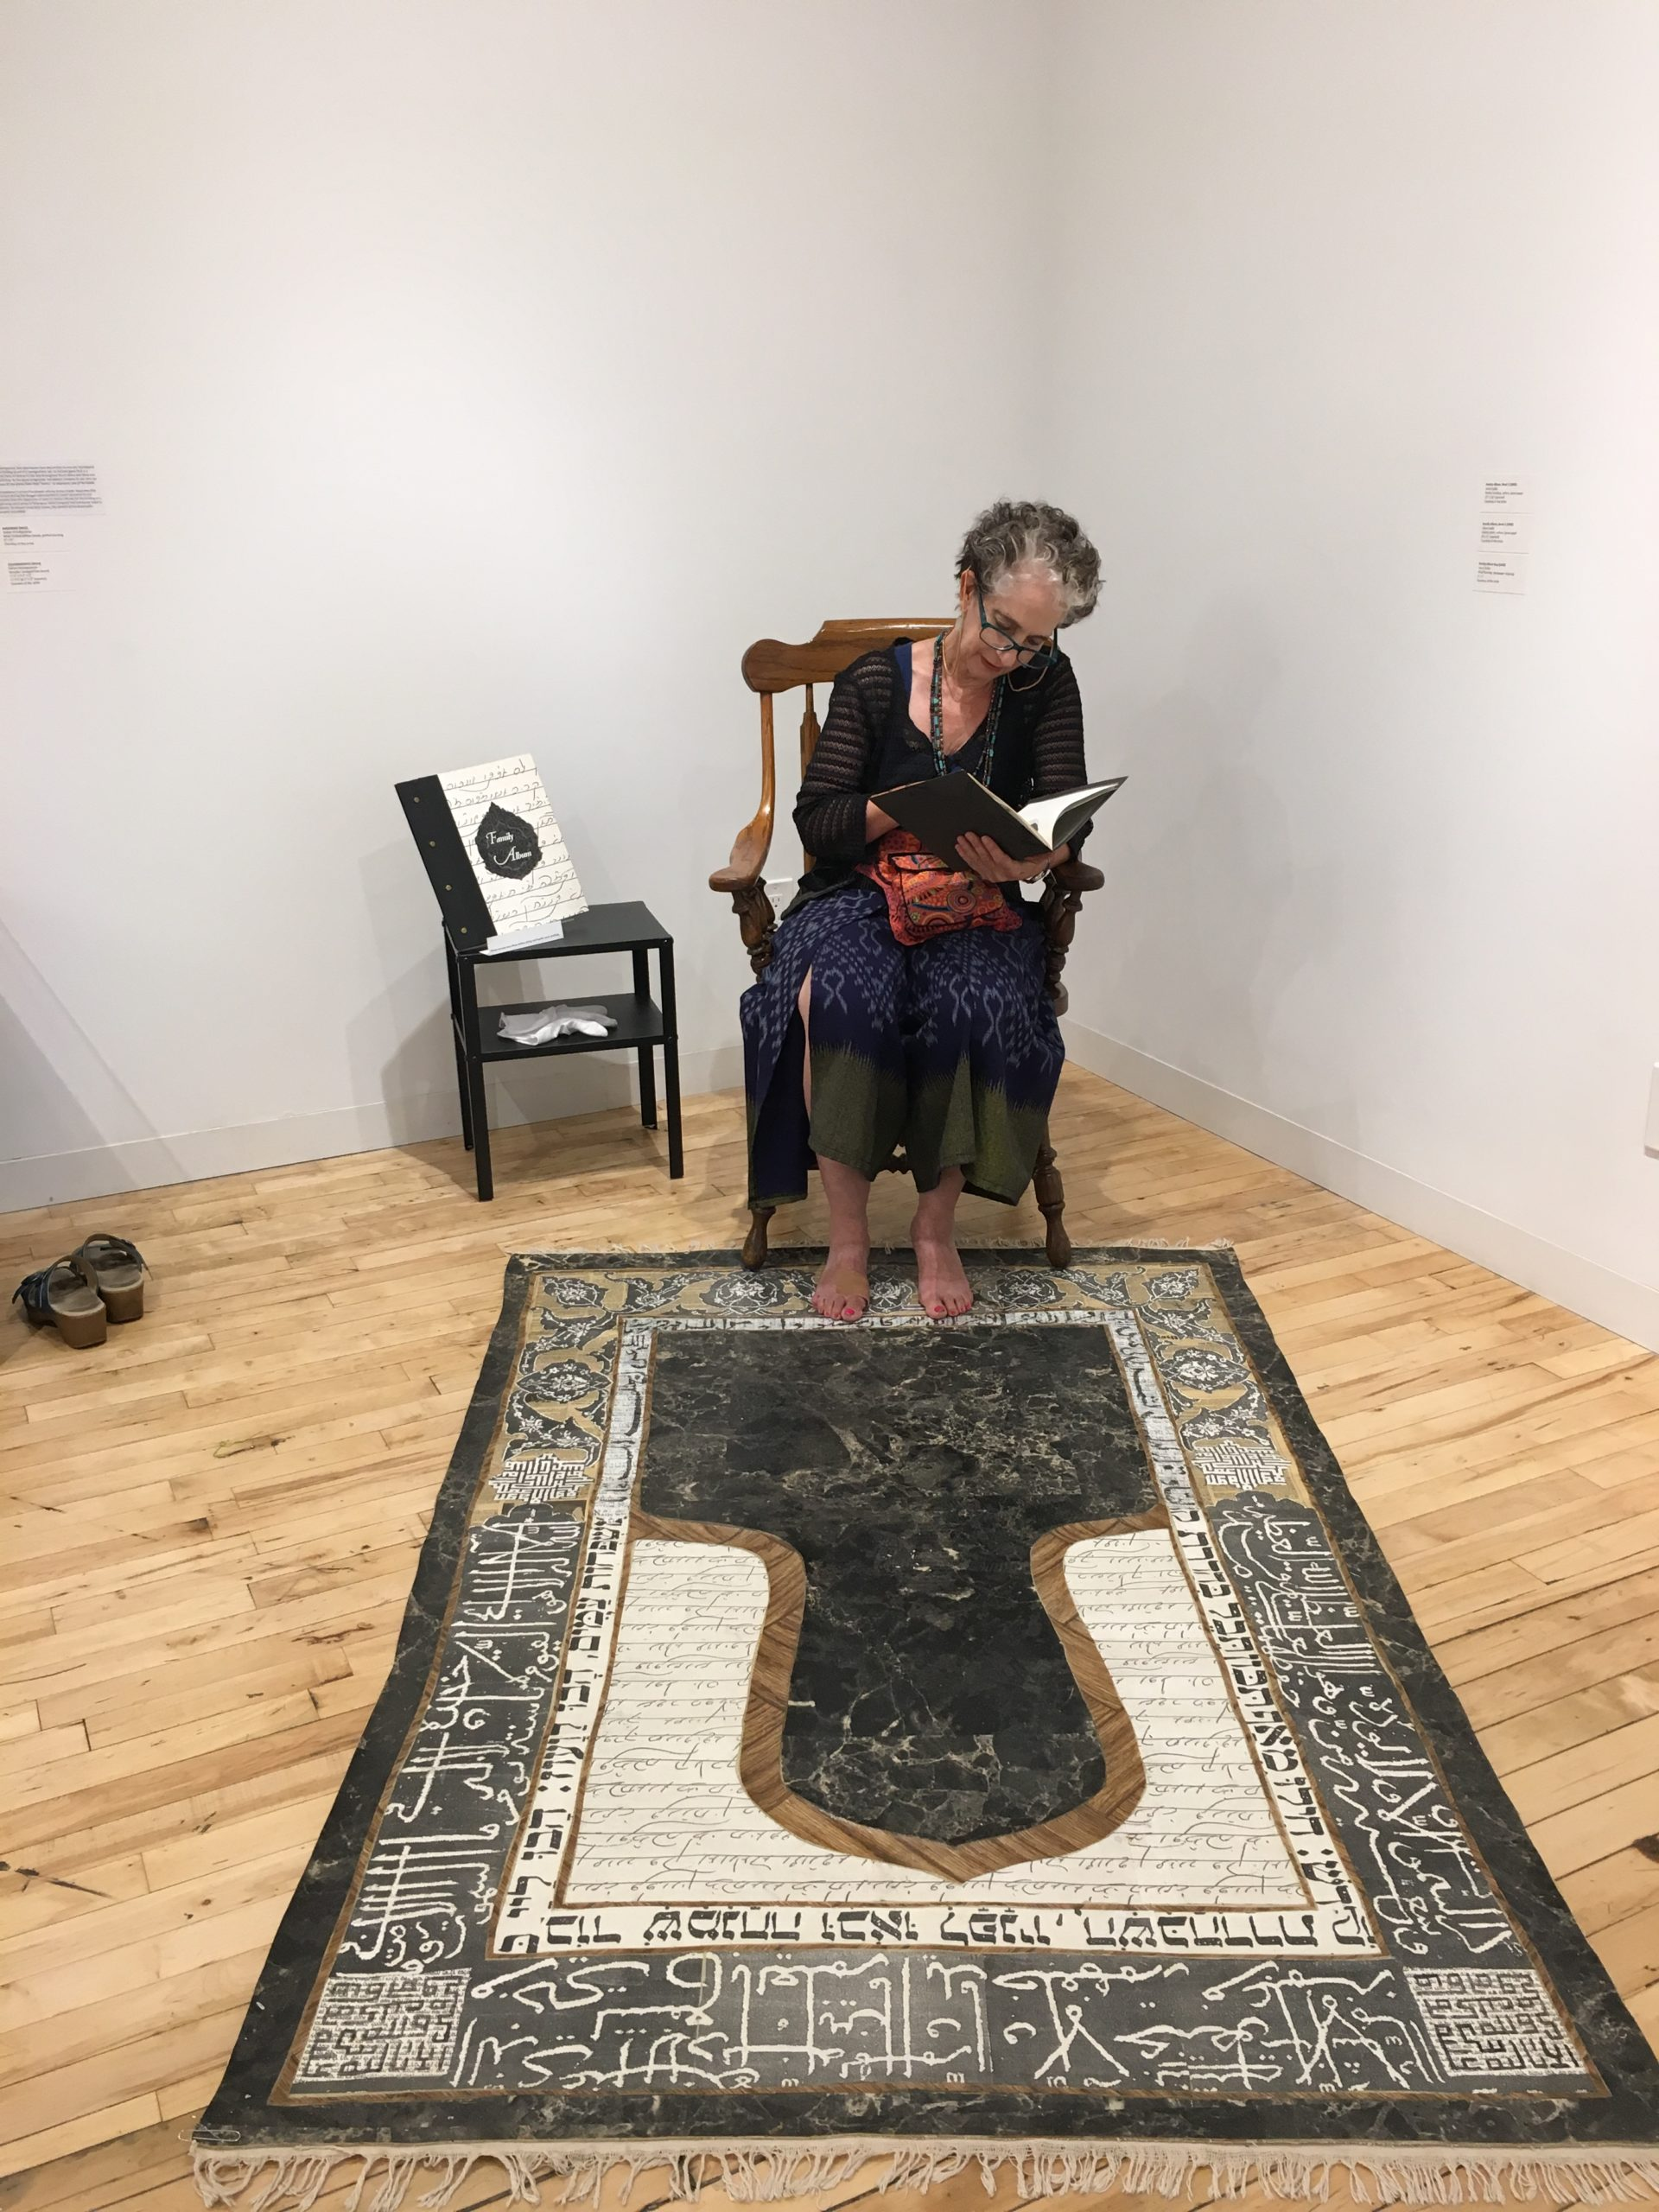 Joyce Dalal sits in a chair reading an artists book with an artwork like islamic style prayer rug laid out before her